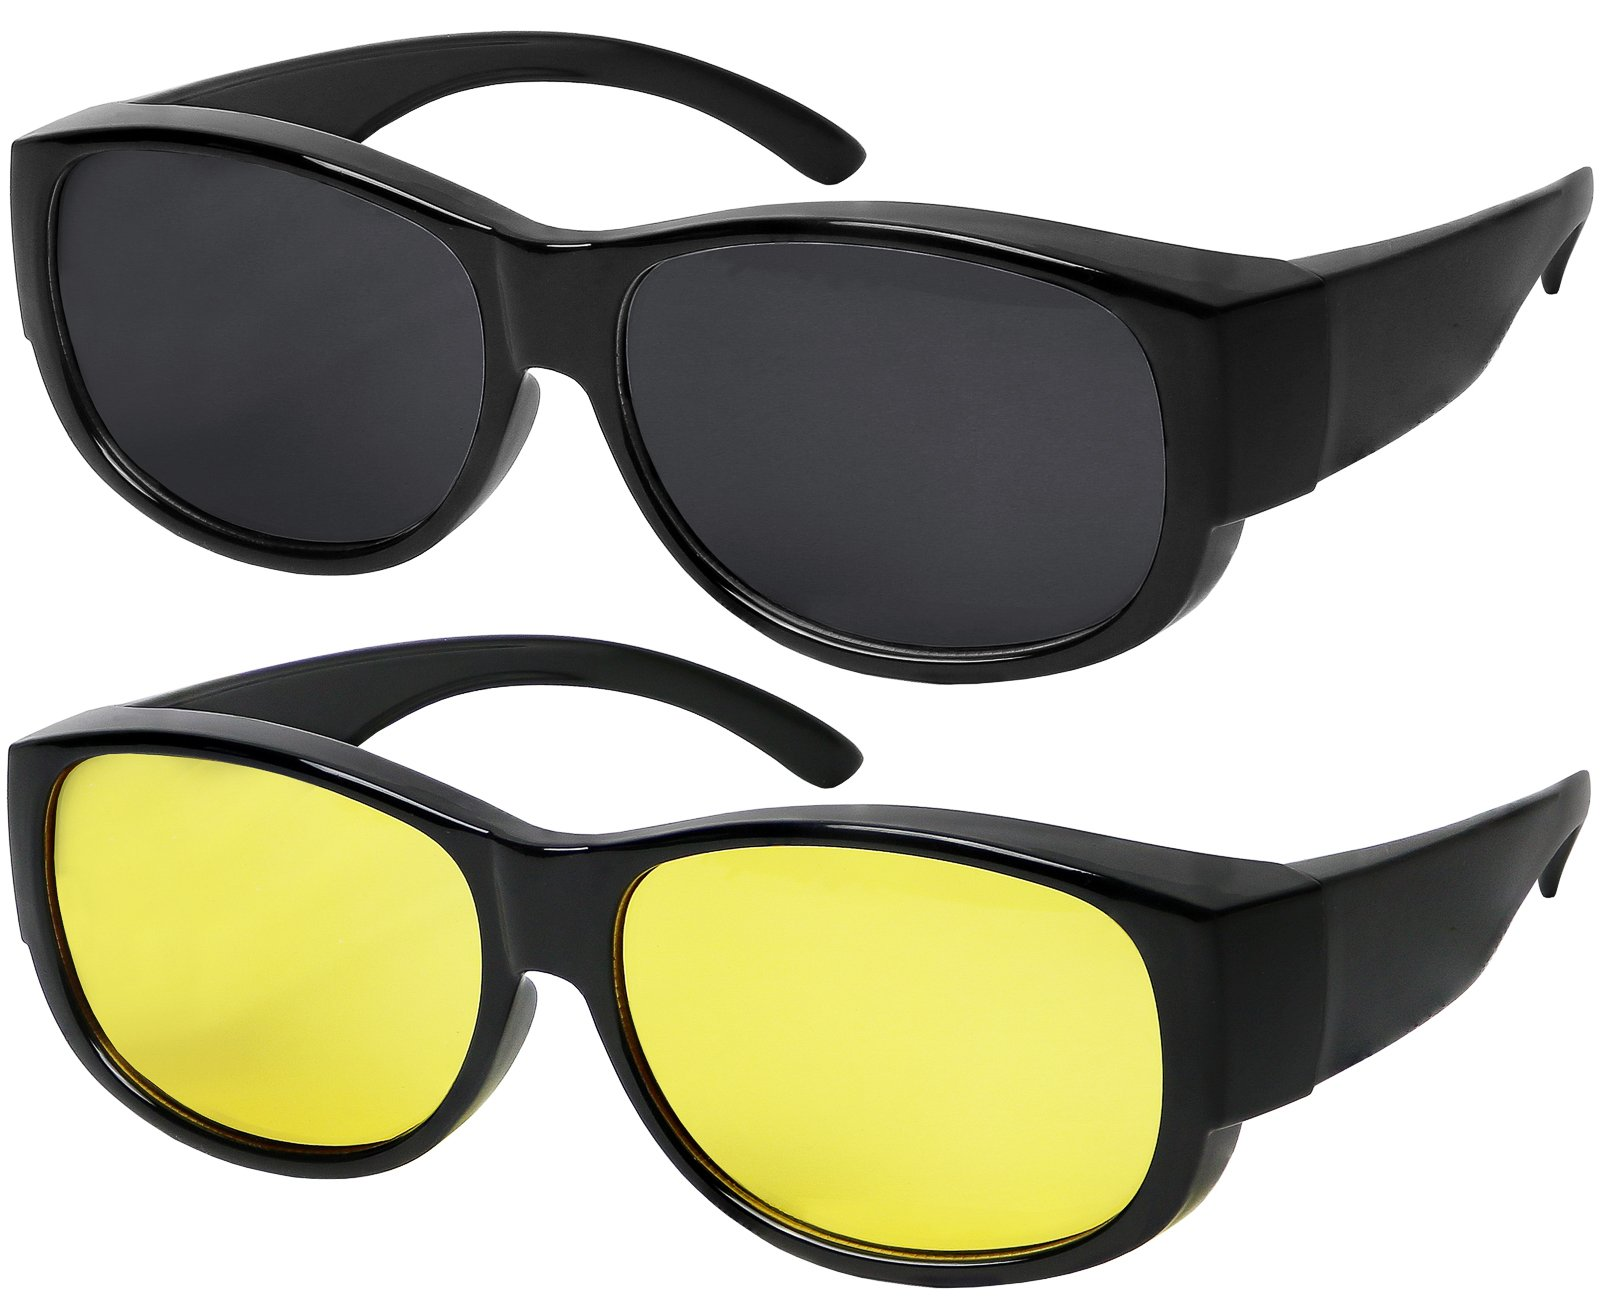 Fit Over Sunglasses With Polarized Lens 100% UV Protection Wear Over Prescription Eyeglasses Set of 2 Grey and Night Lens